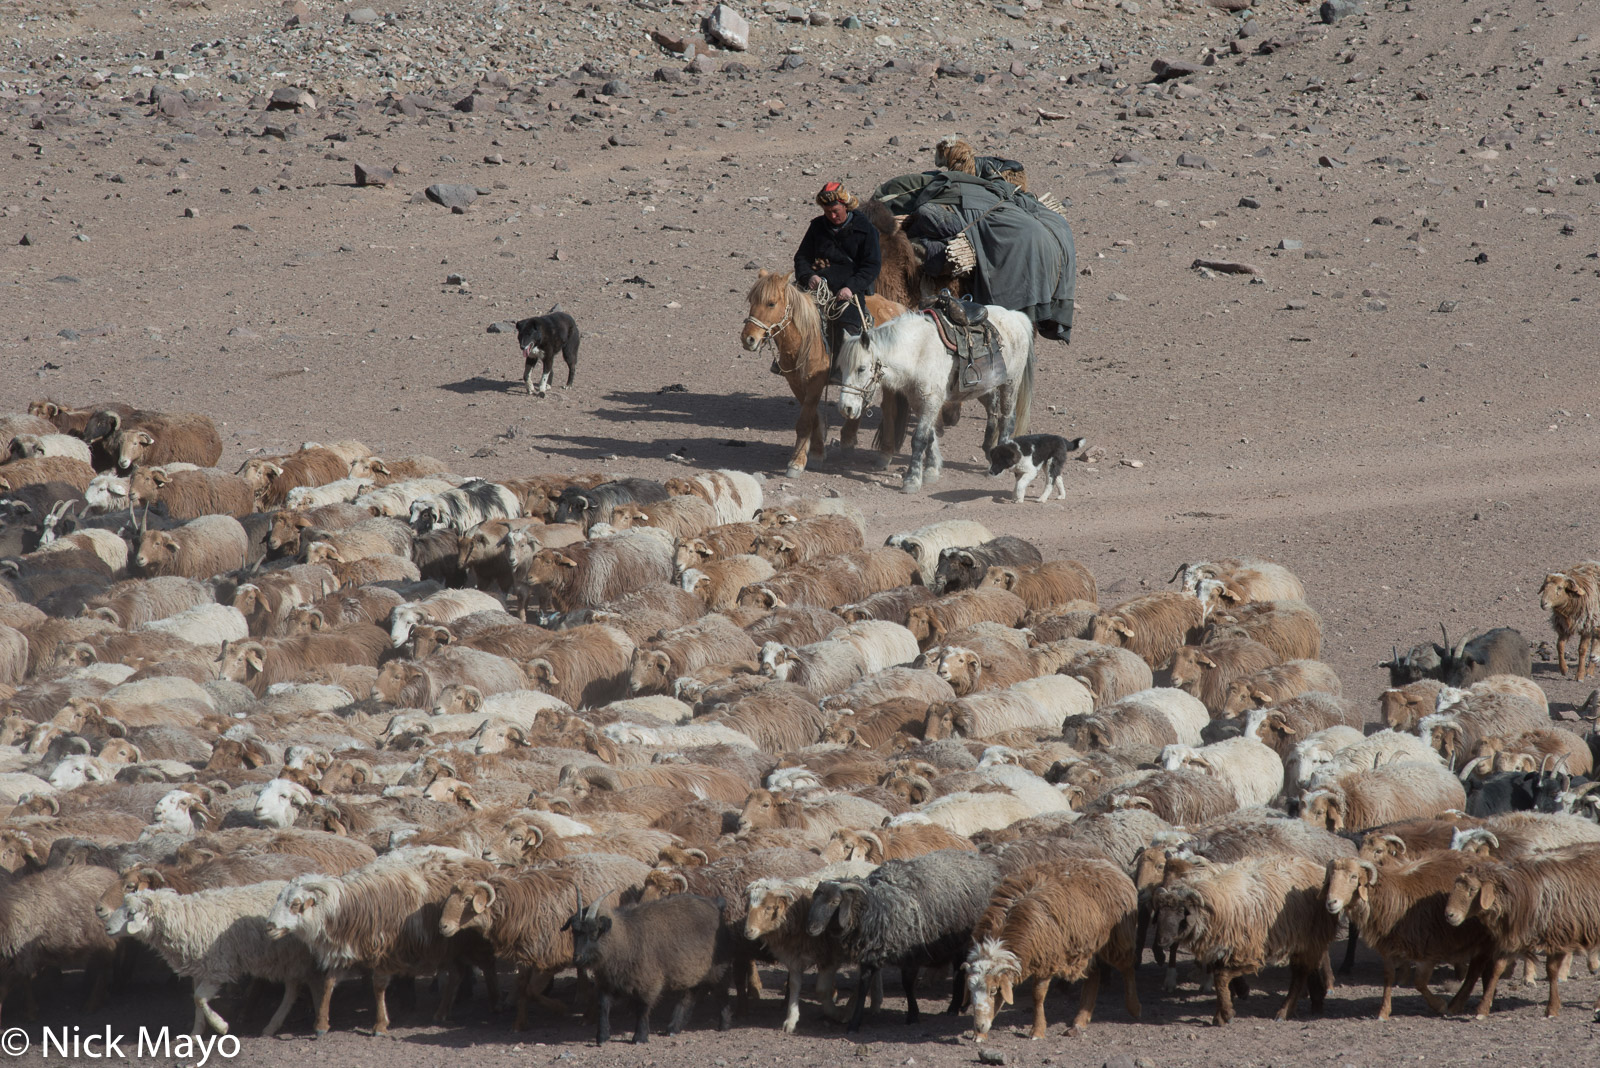 Bayan-Ölgii, Camel, Dog, Goat, Horse, Kazakh, Mongolia, Pack Animal, Sheep, photo